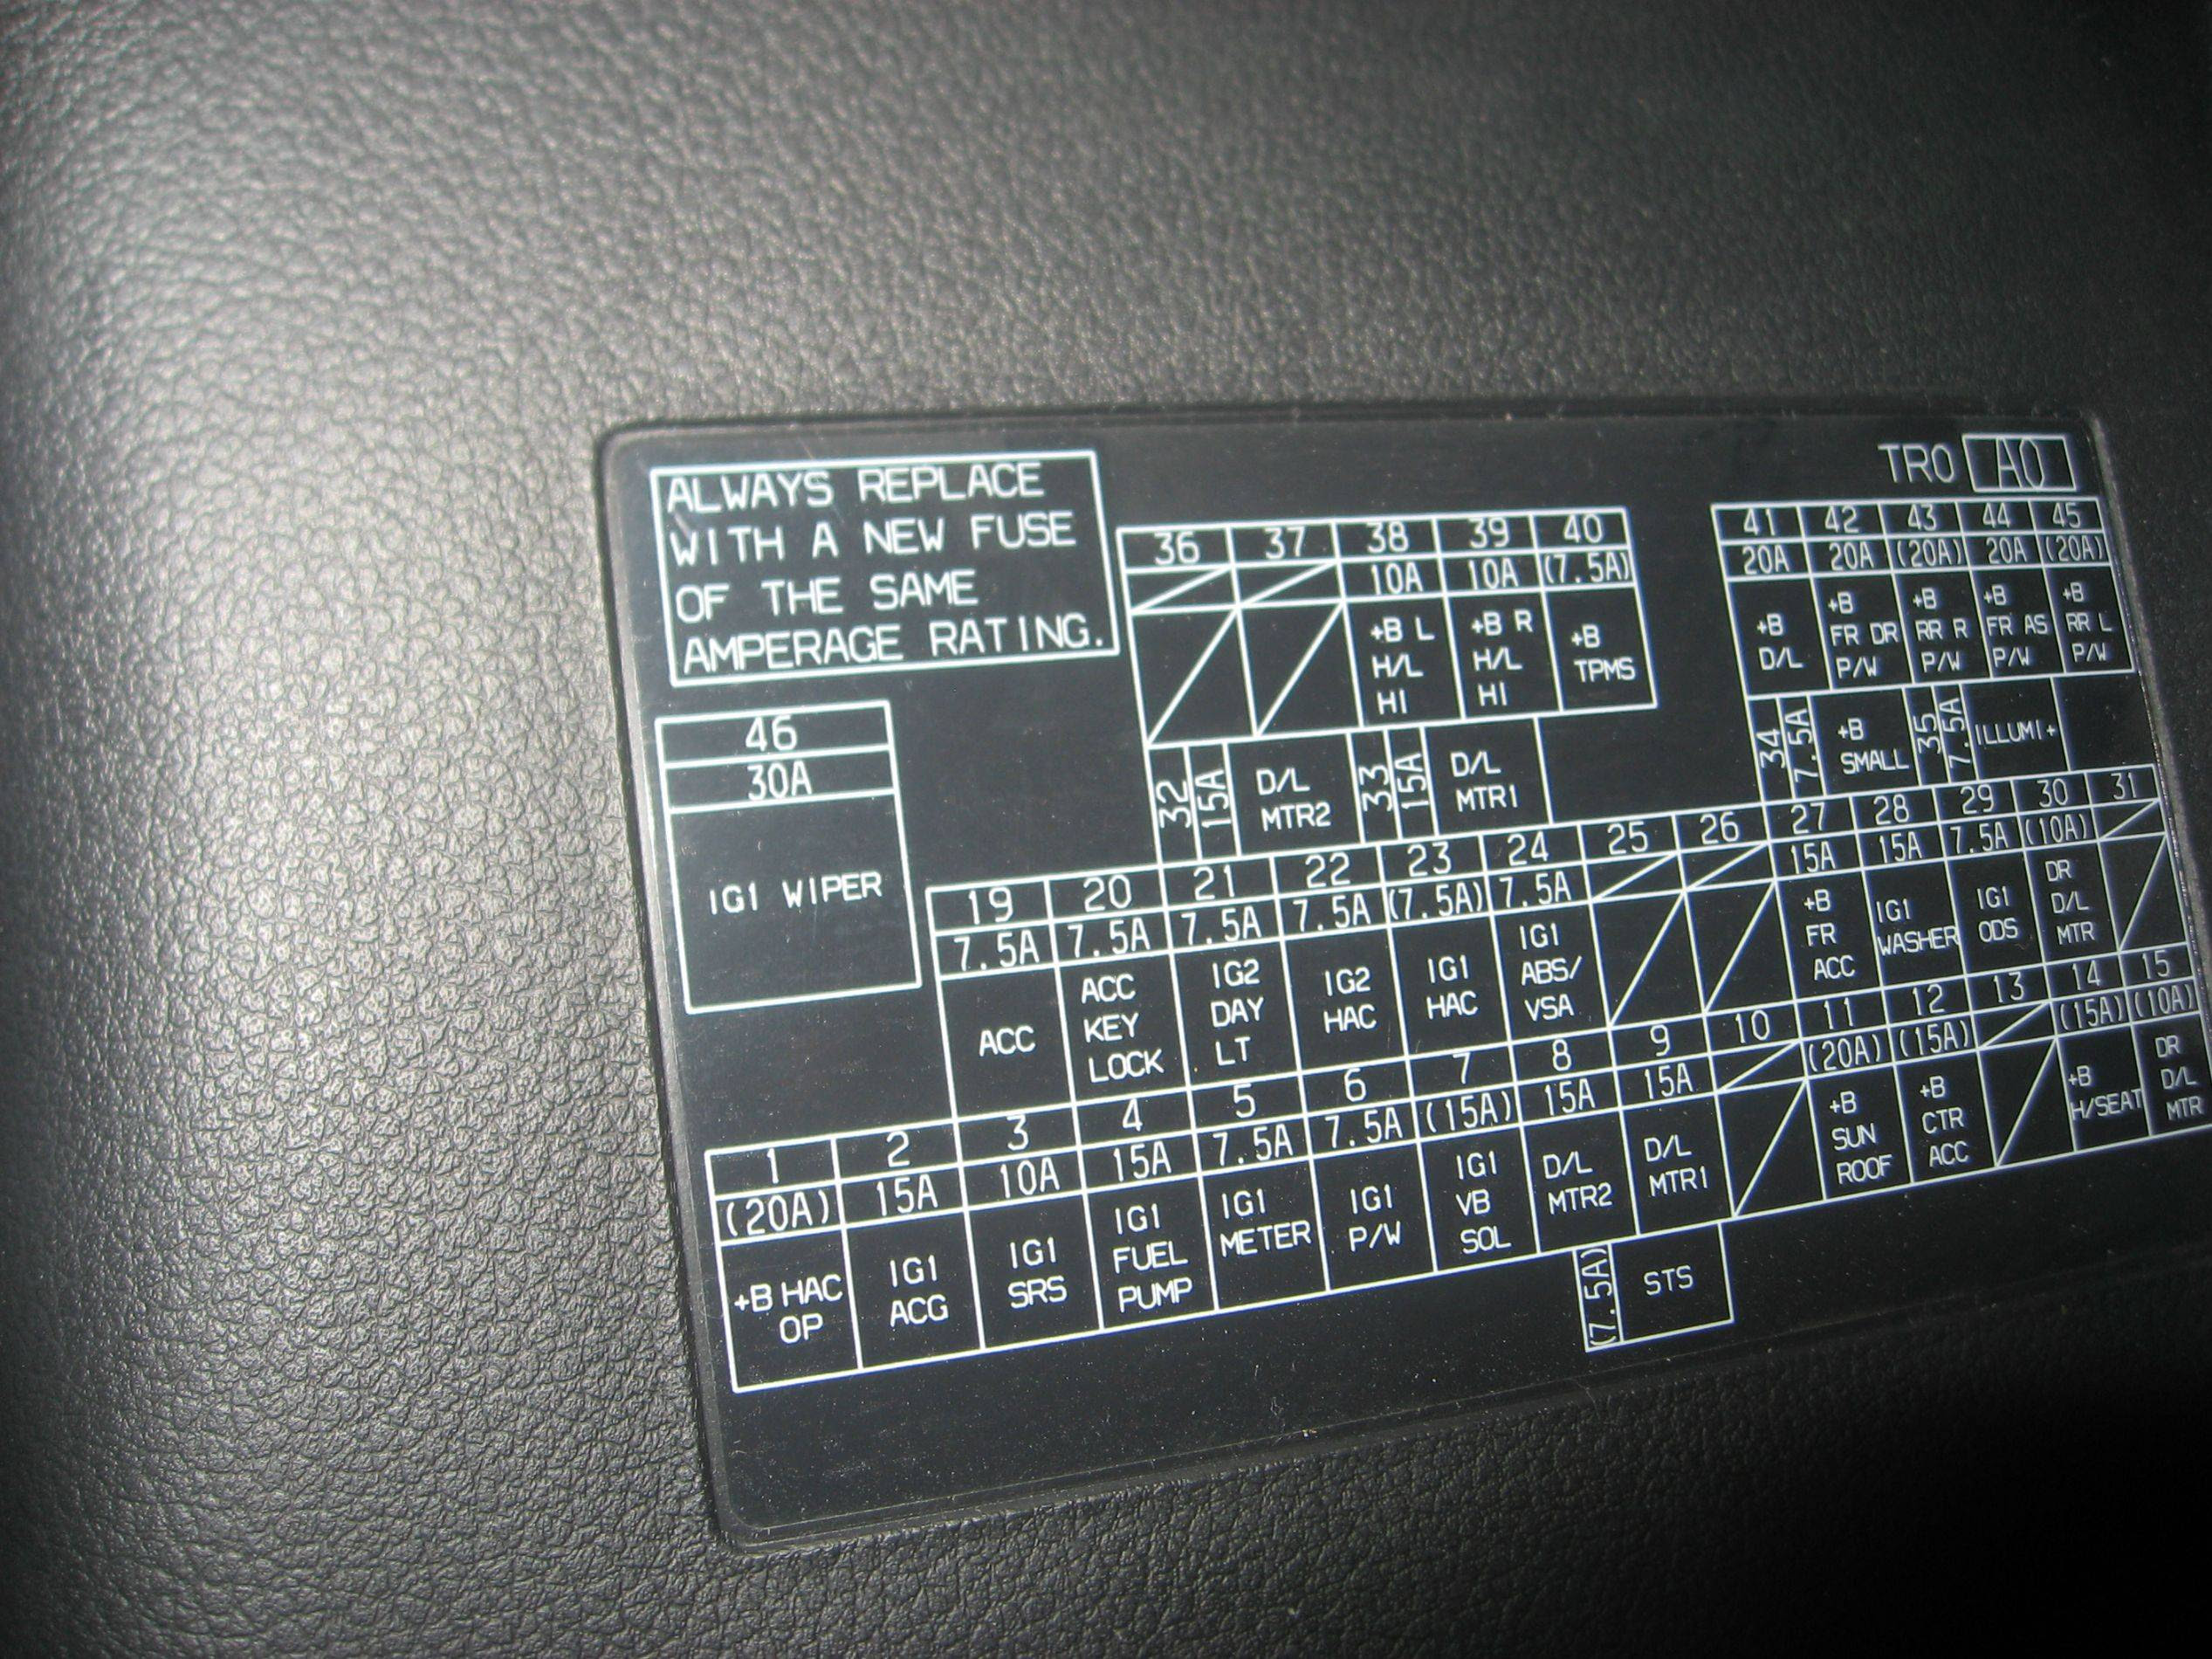 Fuse List And Box Cover Picture 9th Gen Civic Forum